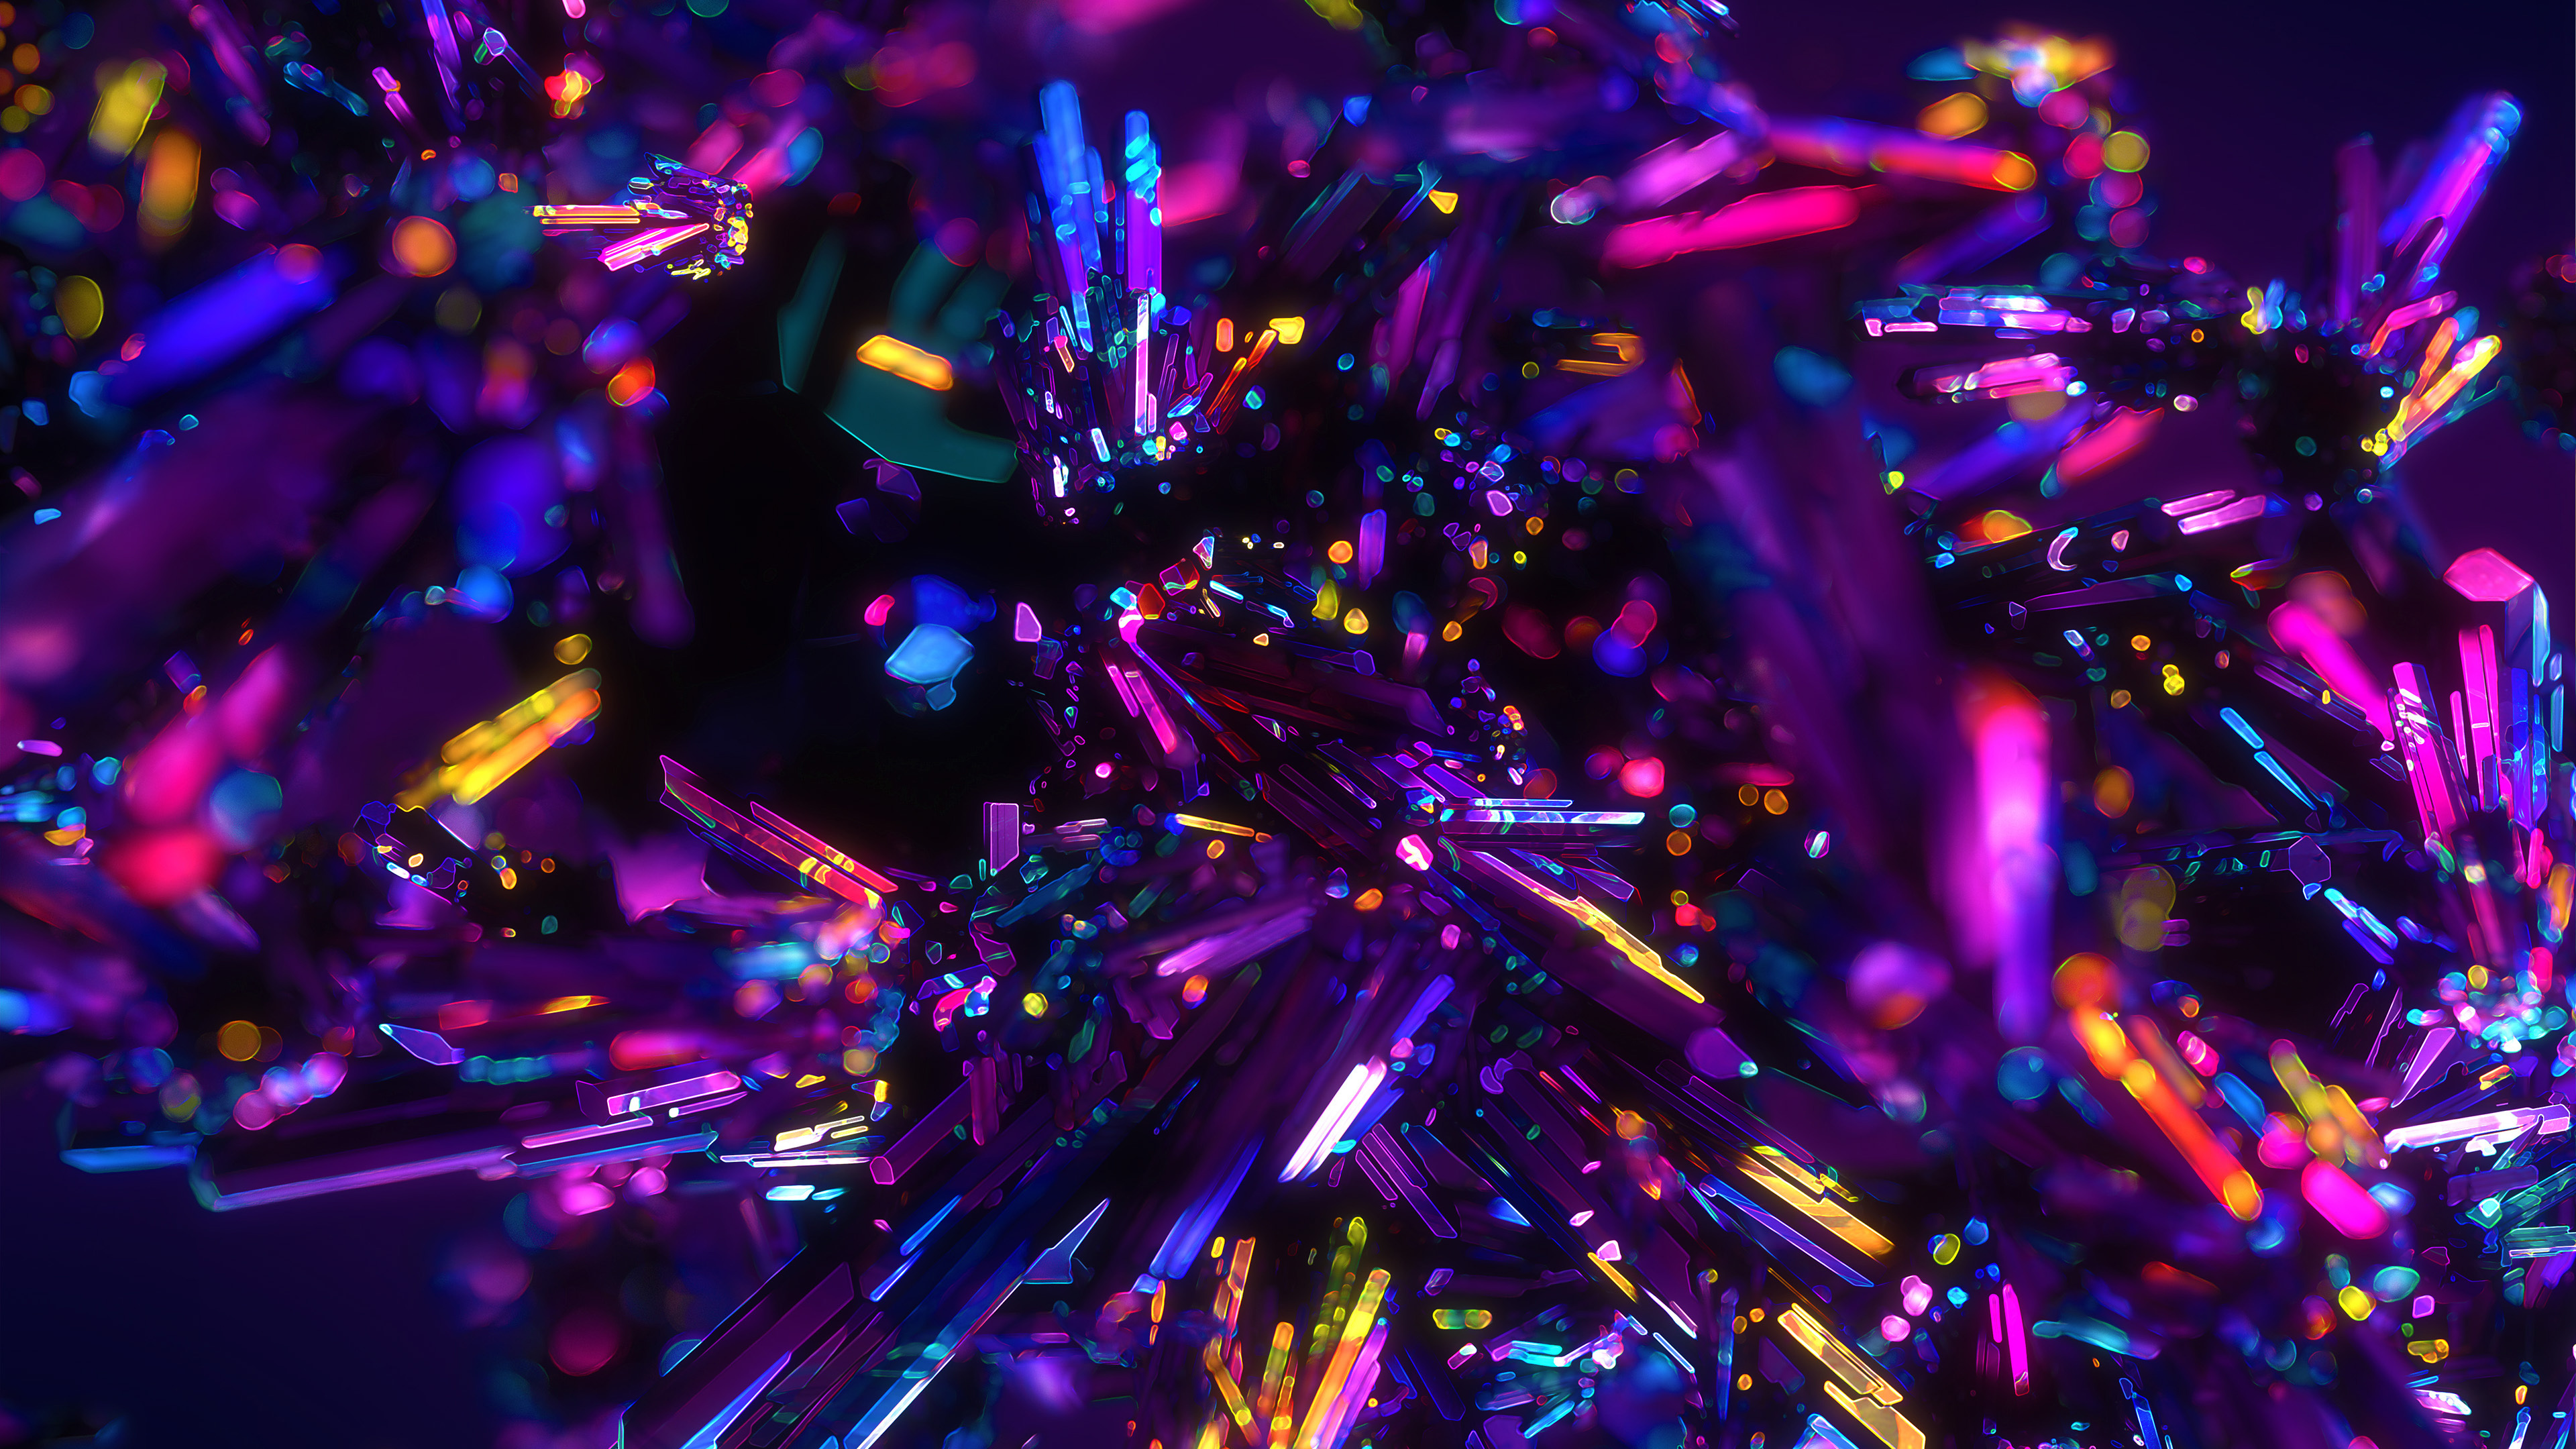 Colorful Crystals Abstract 4K Wallpapers